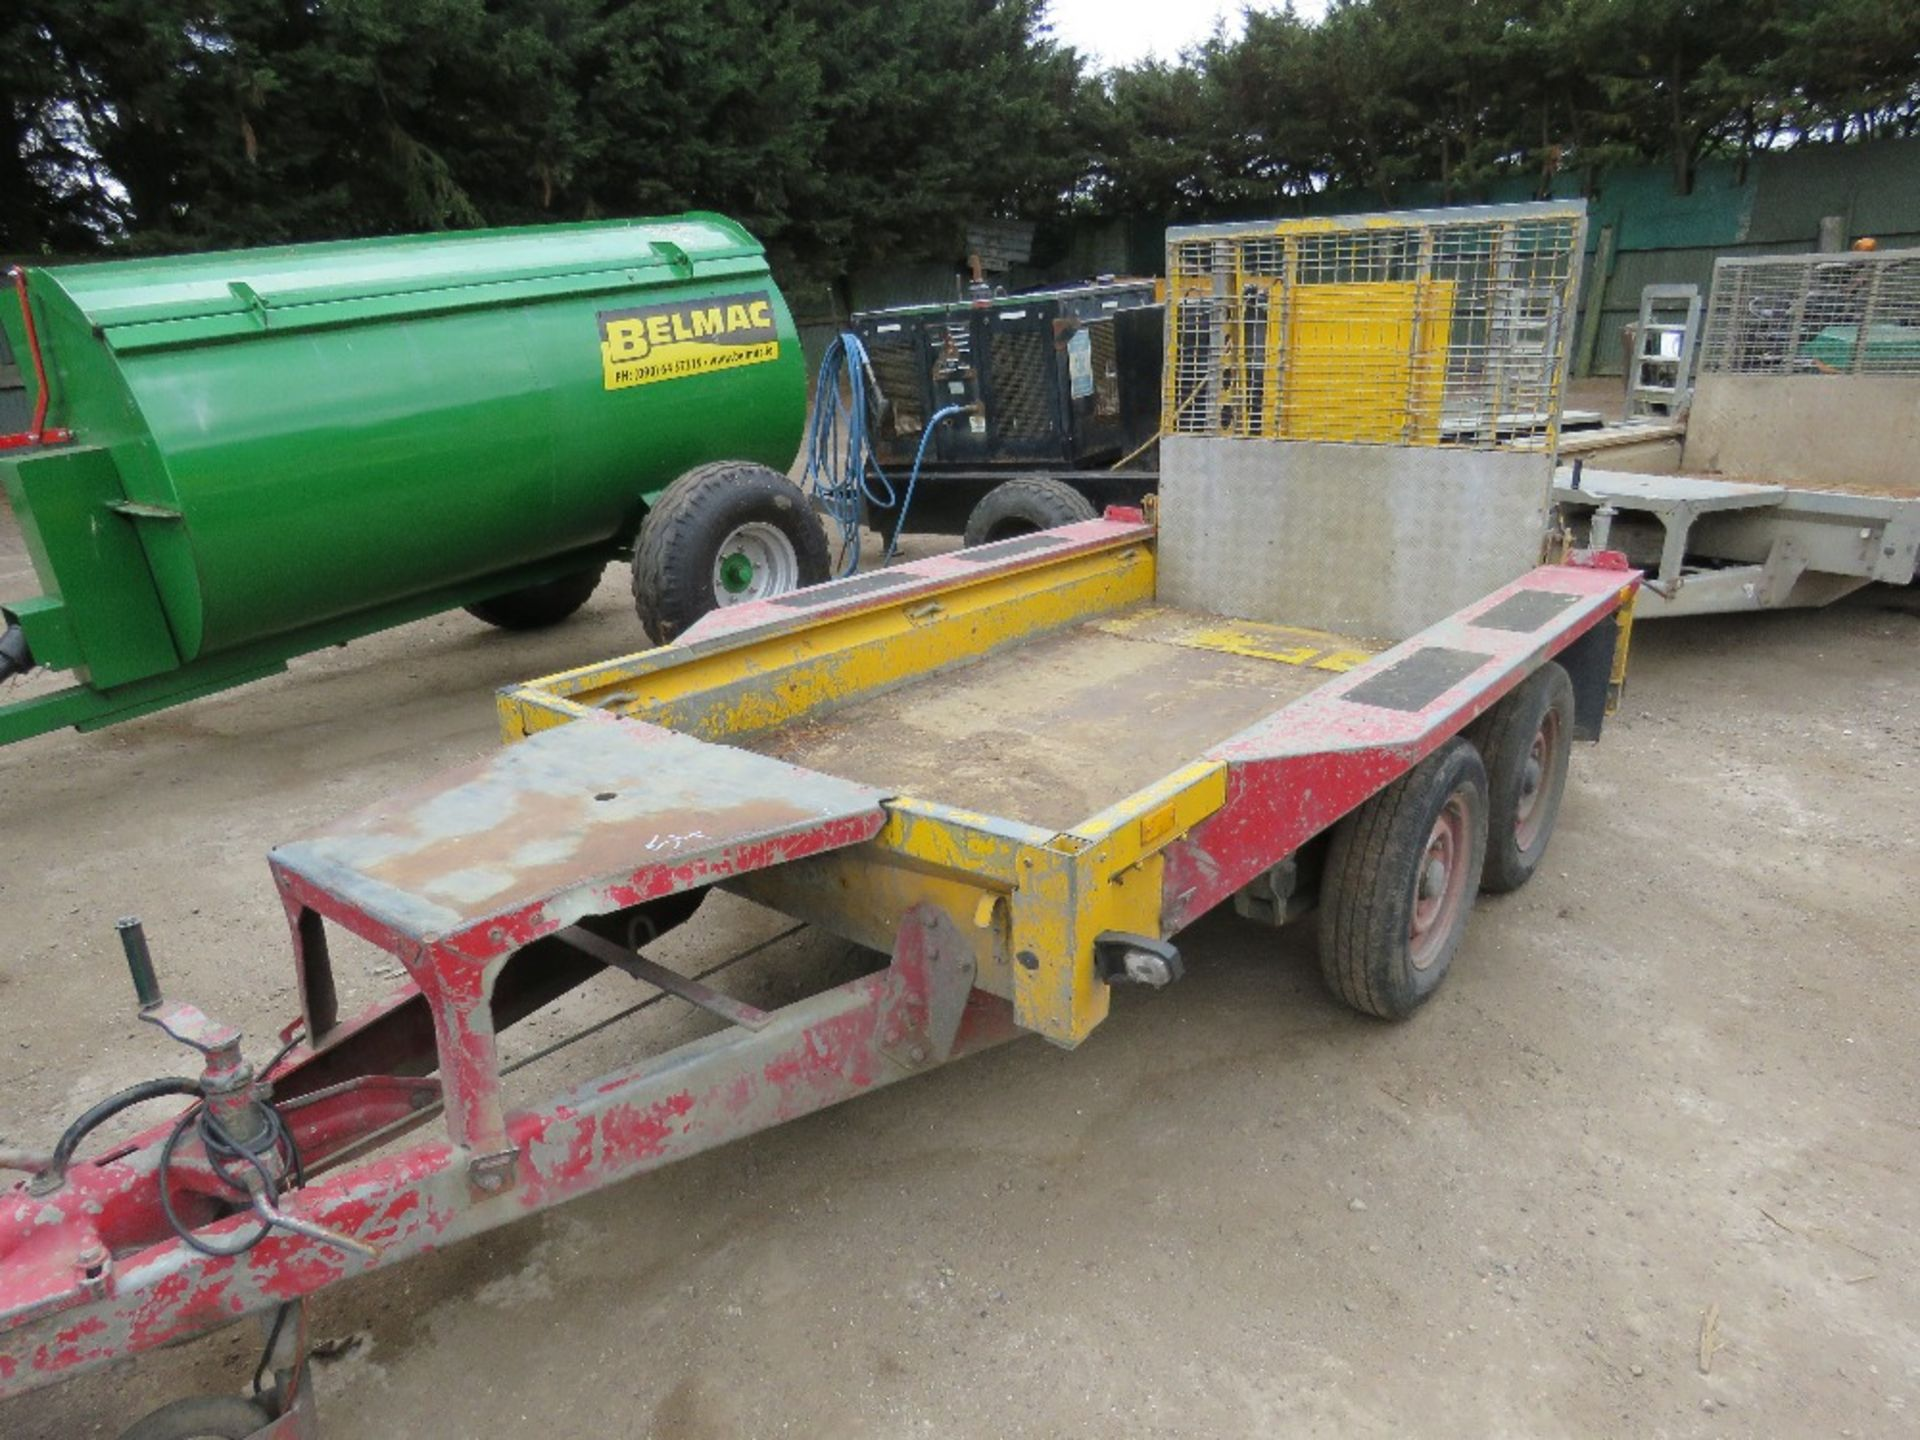 Lot 54 - Ifor Williams mini digger trailer c/w full width ramp PN:MRT33 YEAR 2011, direct from company